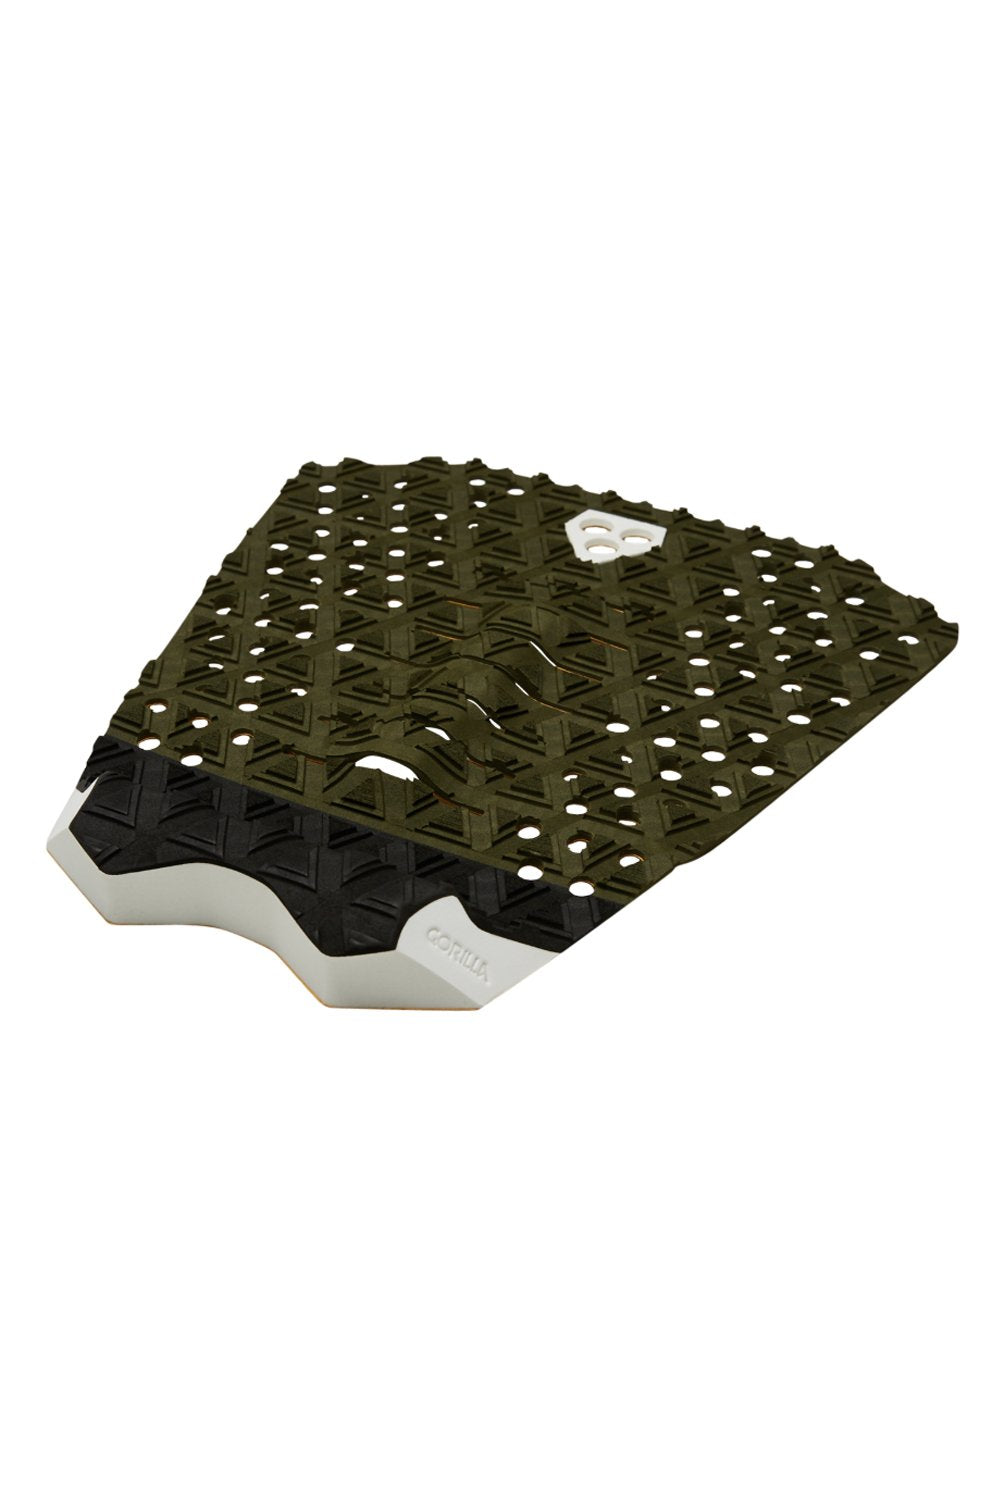 Gorilla Grip Uno Traction Pad